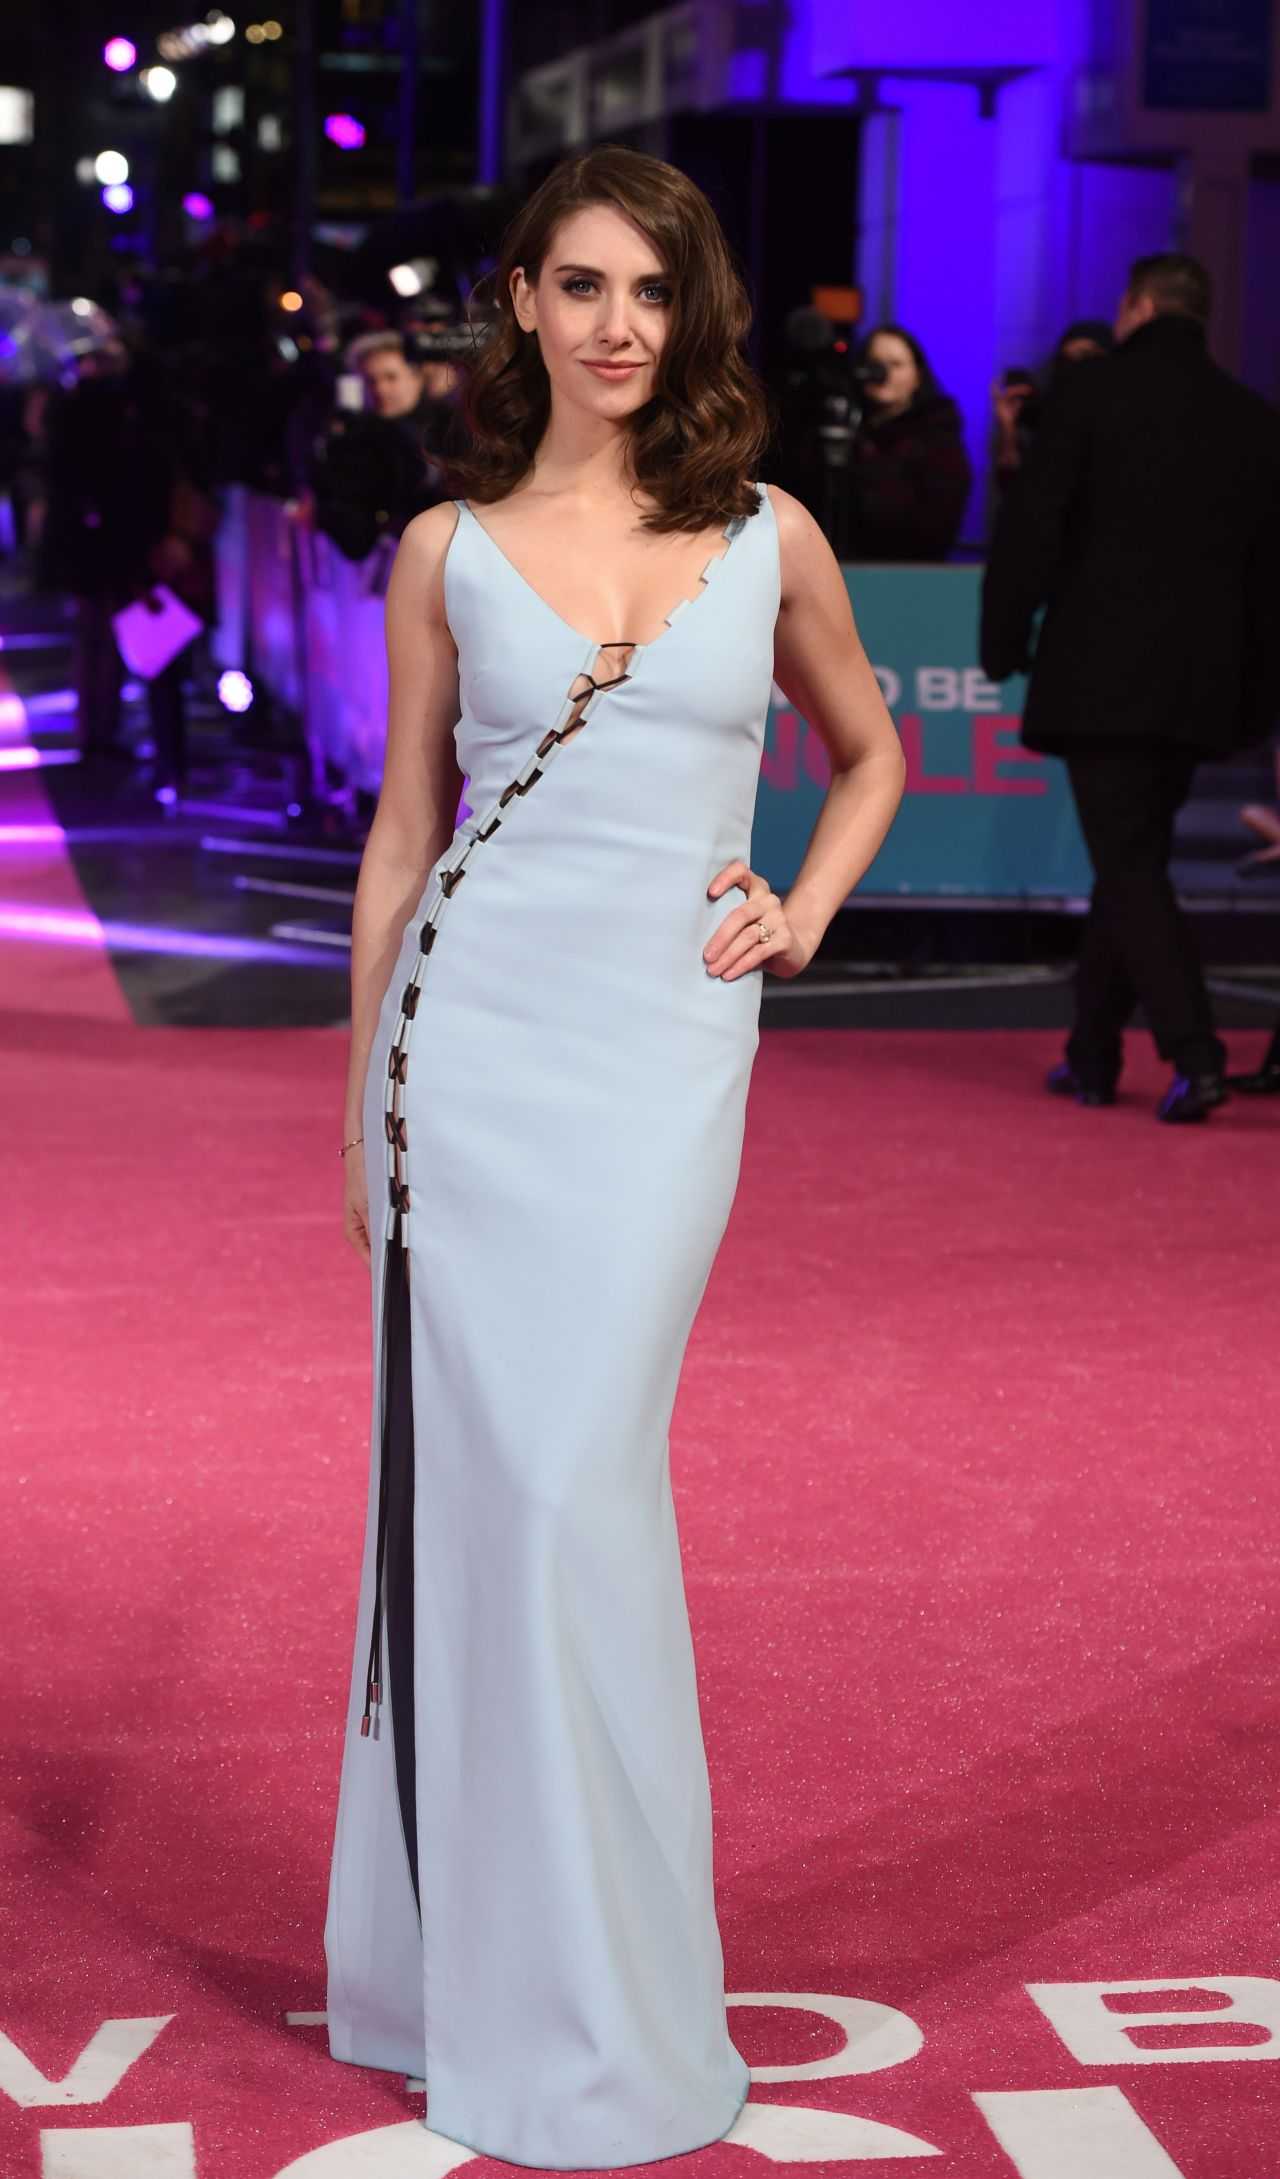 alison-brie-how-to-be-single-premiere-in-london-1